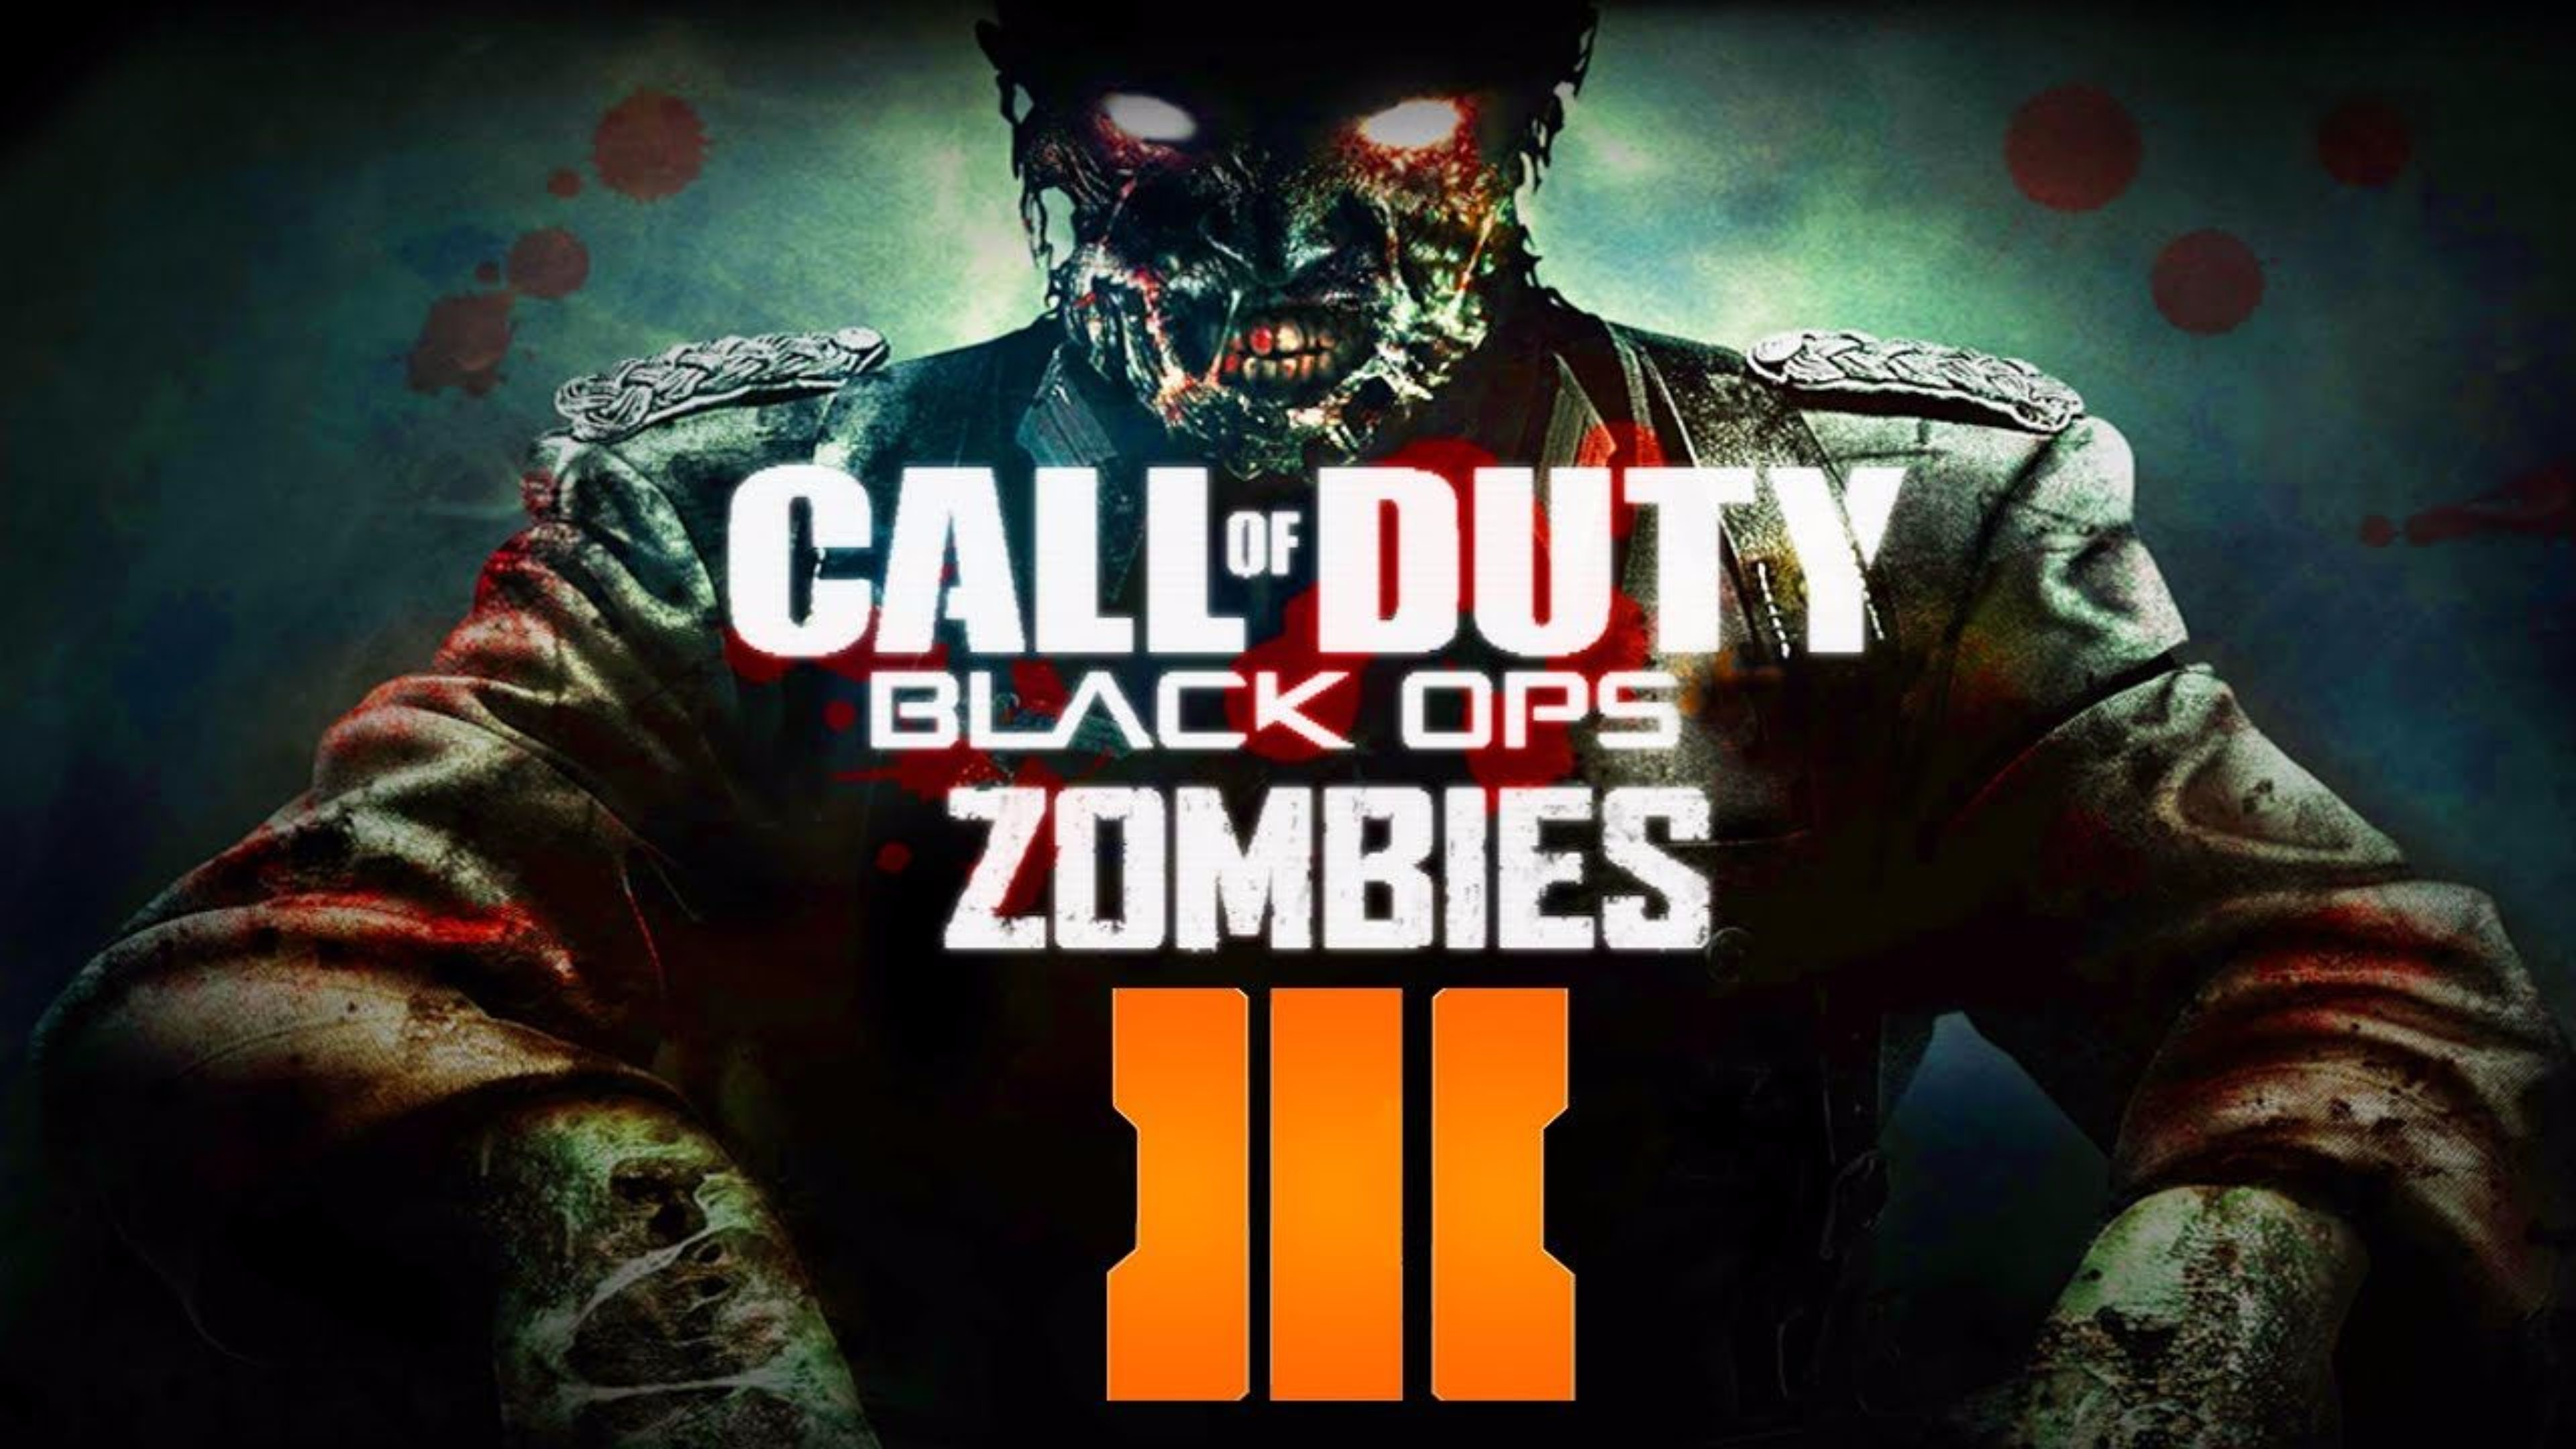 call of duty black ops 3 zombies wallpaper.